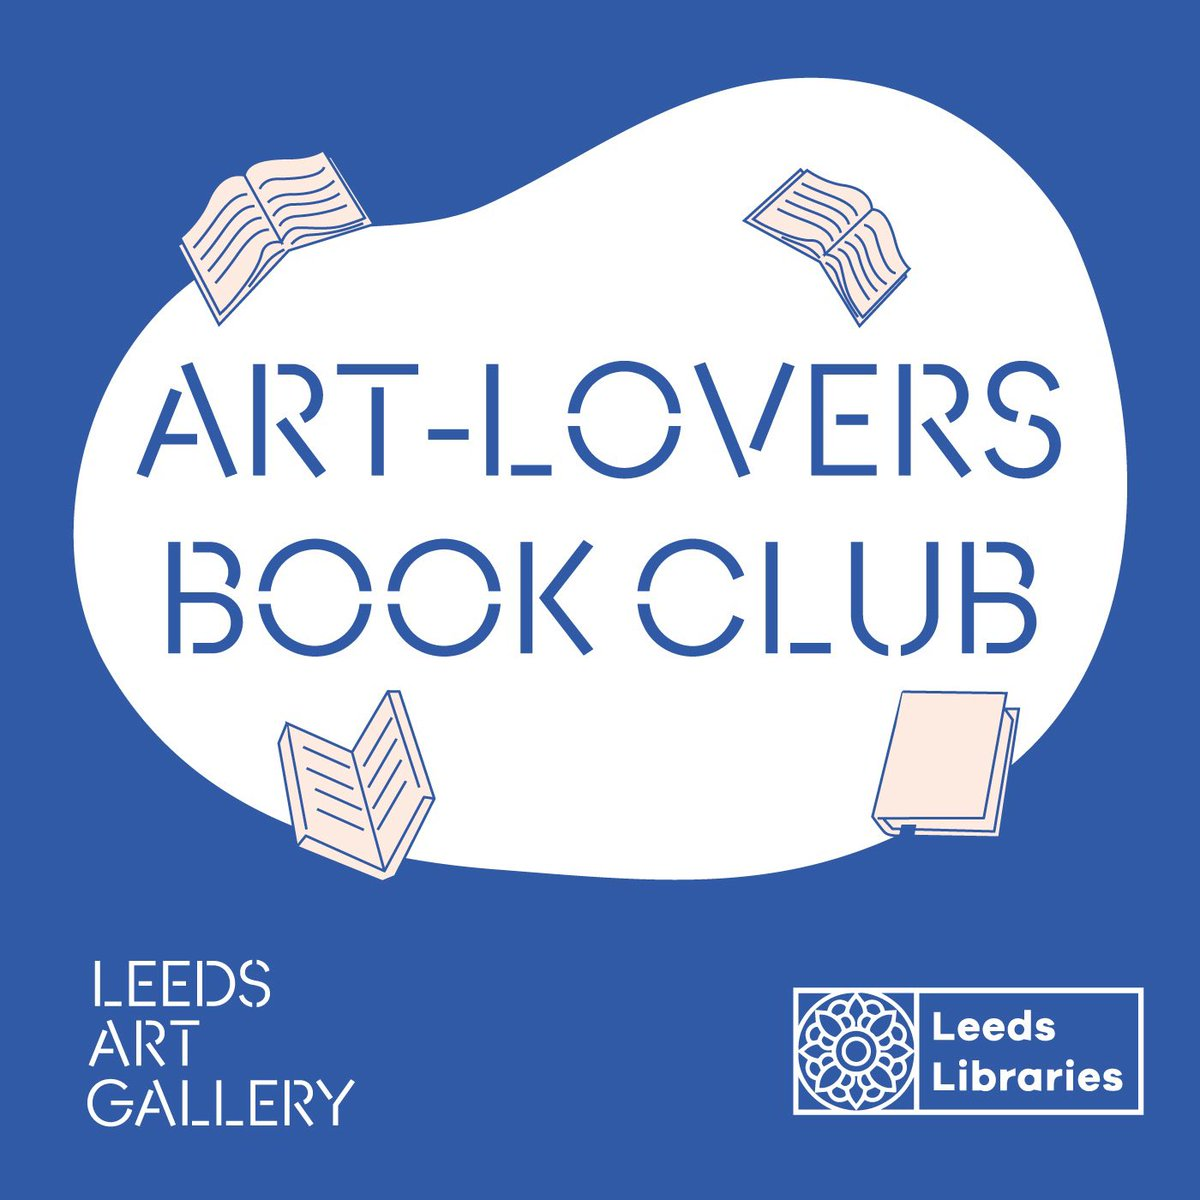 👀 December's online Art lovers Book Club is with artist Chris Drury, whose 'Medicine Wheel' with a natural object foraged every day for a year is part of #NaturalEncounters @LeedsArtGallery . In partnership with @leedslibraries Book a free place here: bit.ly/3mfaOcE